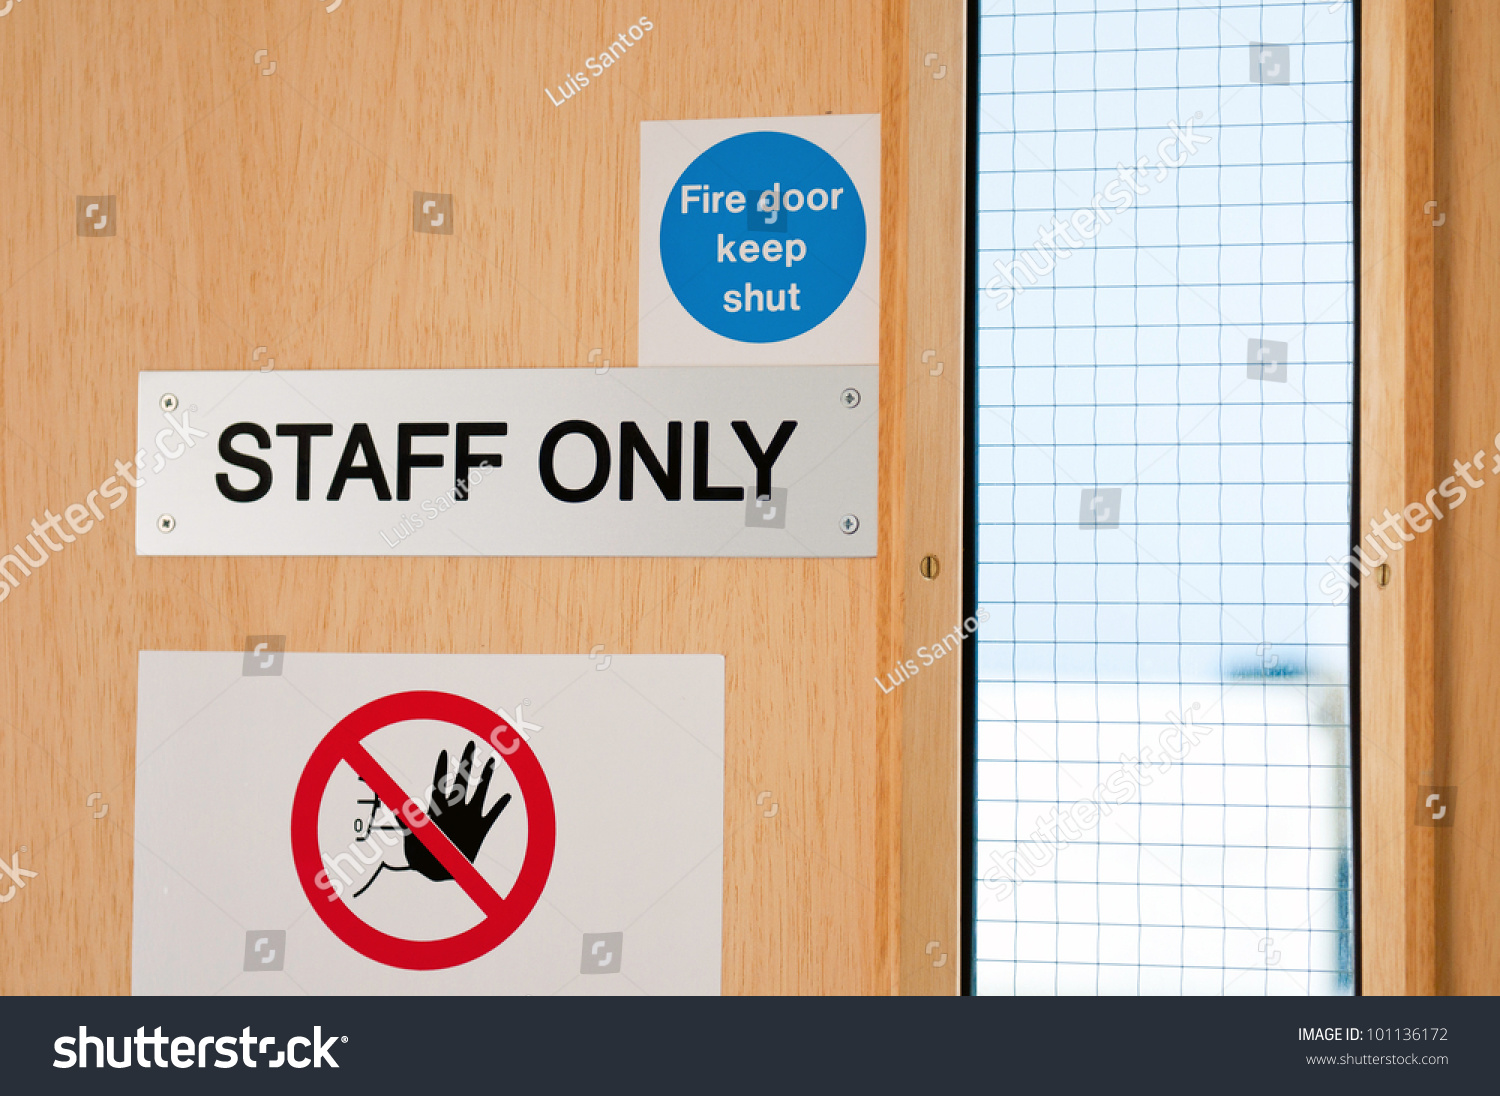 Staff only door signs outside laboratory room to assure